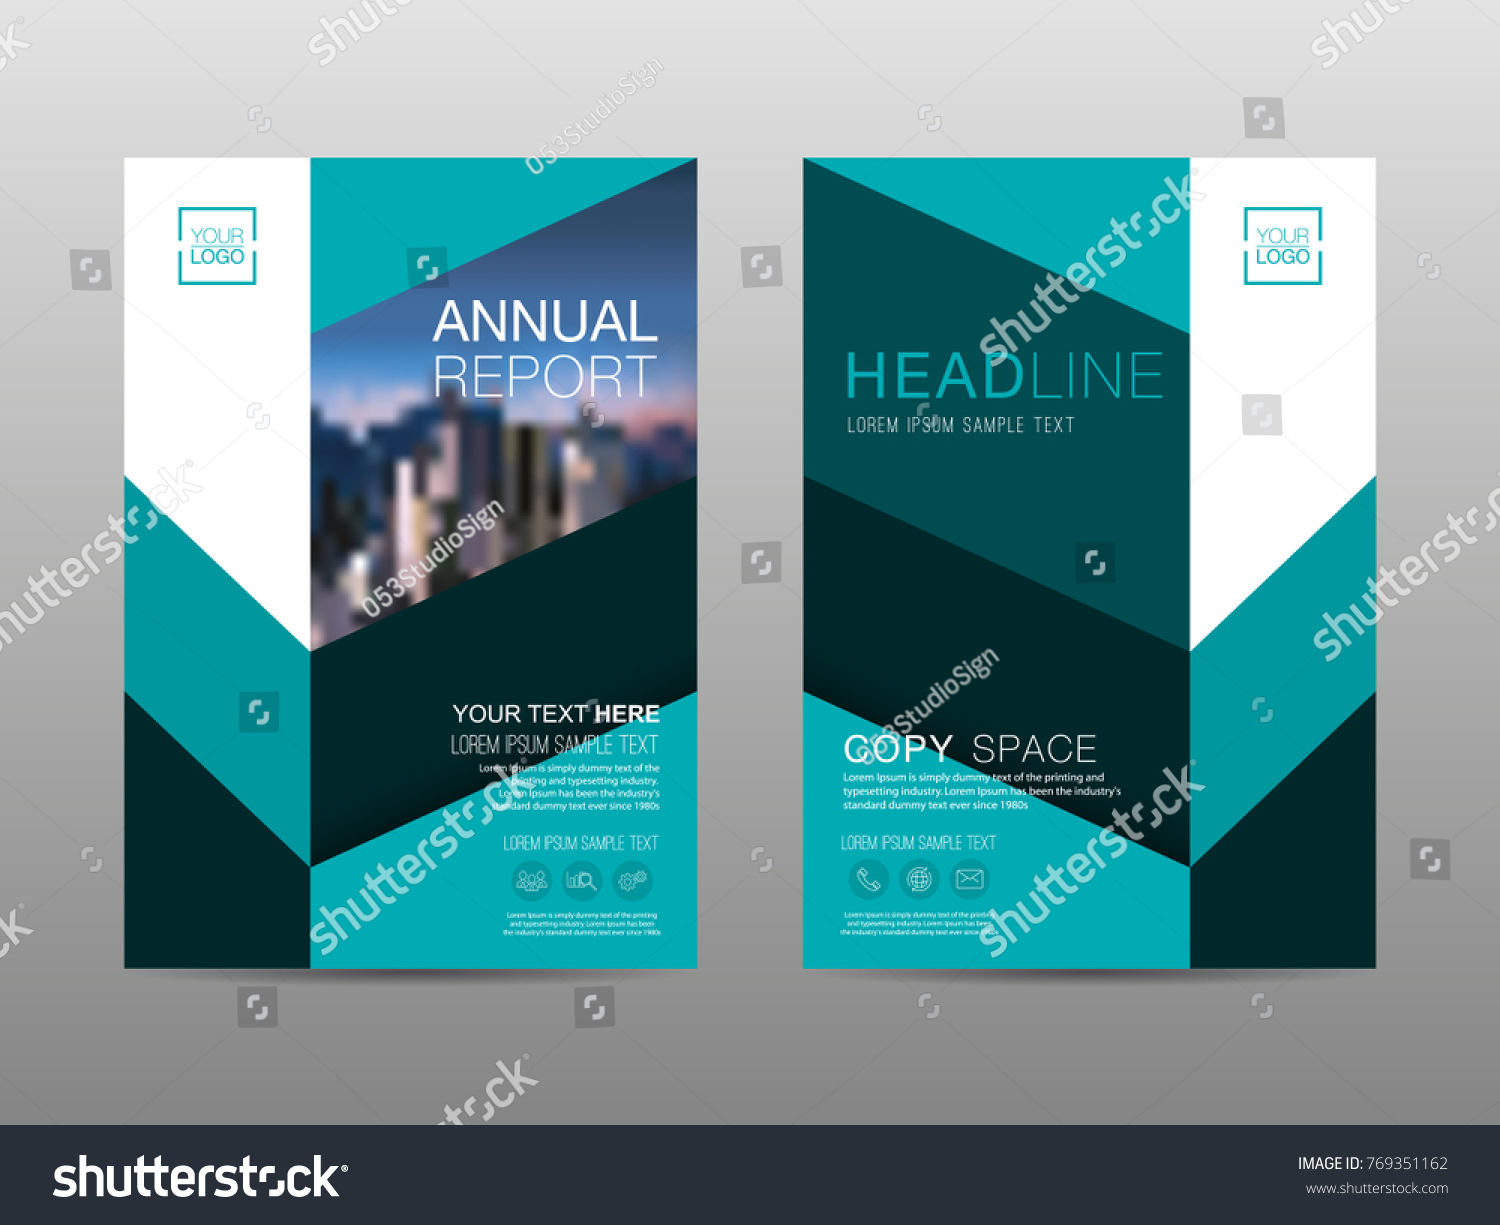 Annual Report Brochure Layout Design Template Stock Vector - Advertising brochure templates